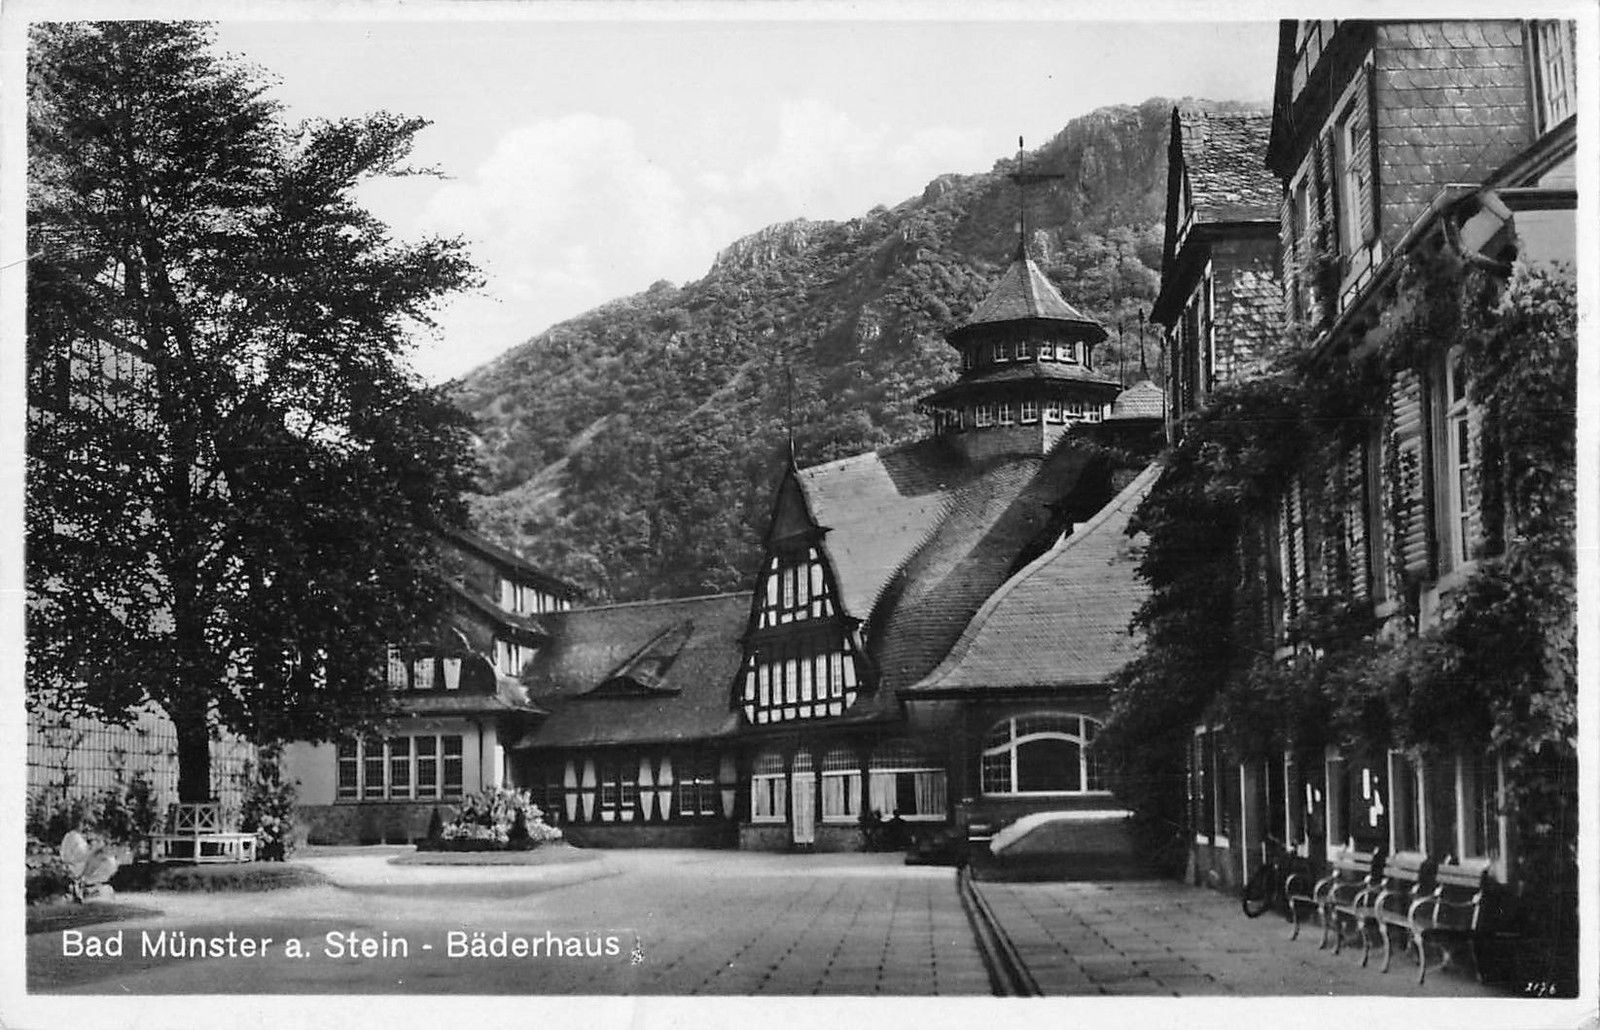 Bad Stein Bg37320 Bad Munster A Stein Baderhaus Real Photo Germany Hippostcard